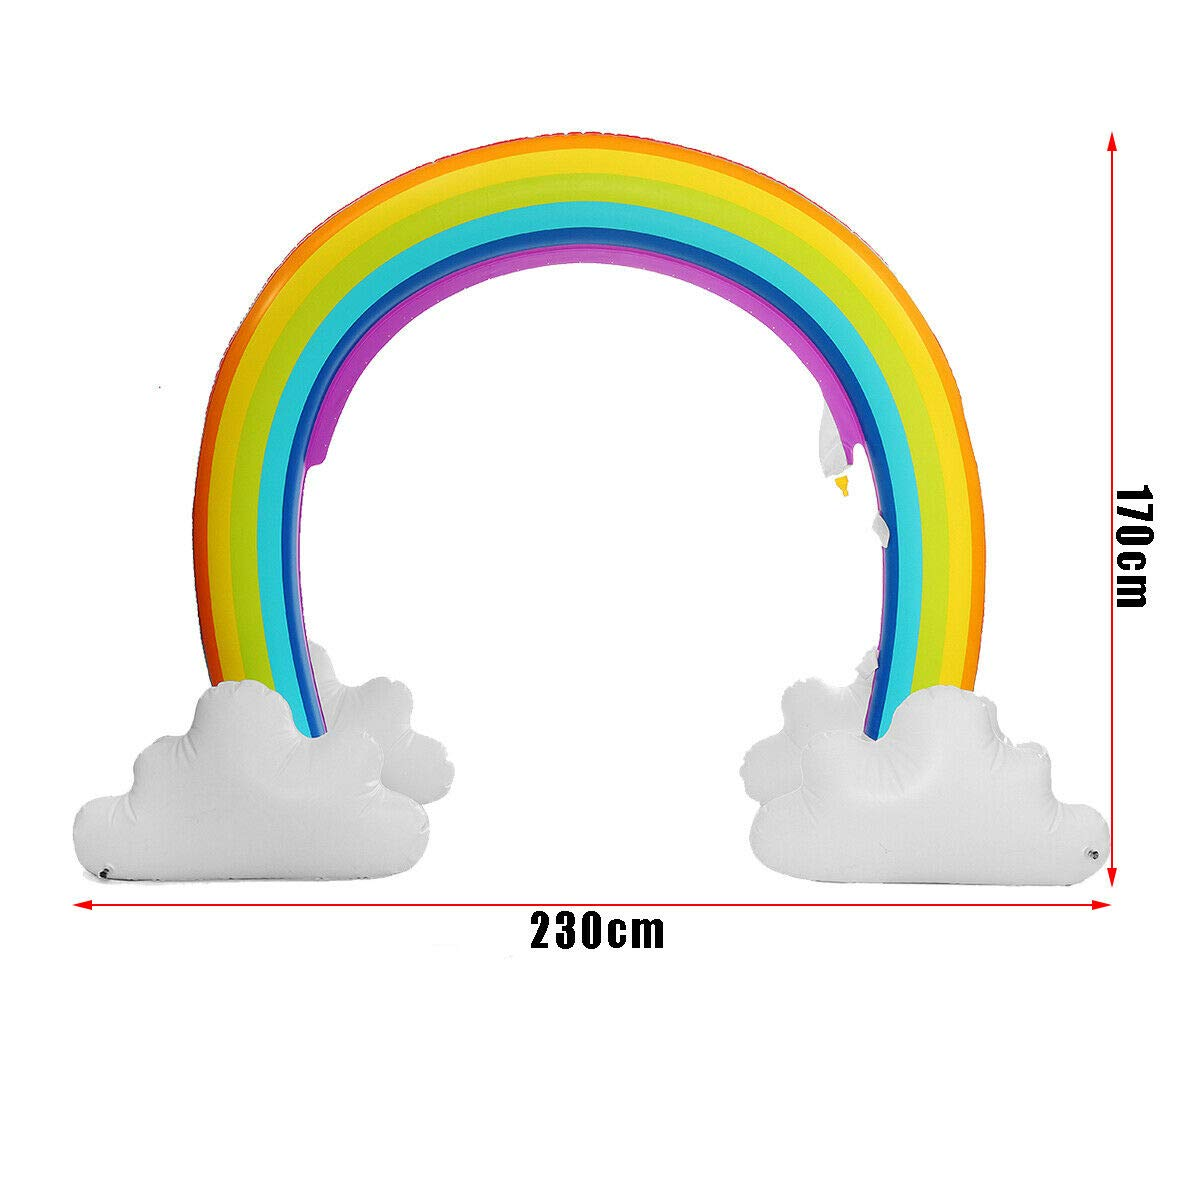 MerryXD Rainbow Sprinkler,Giant Water Inflatable Arch Sprinkler Outdoor Summer Toys for Kids by MerryXD (Image #2)